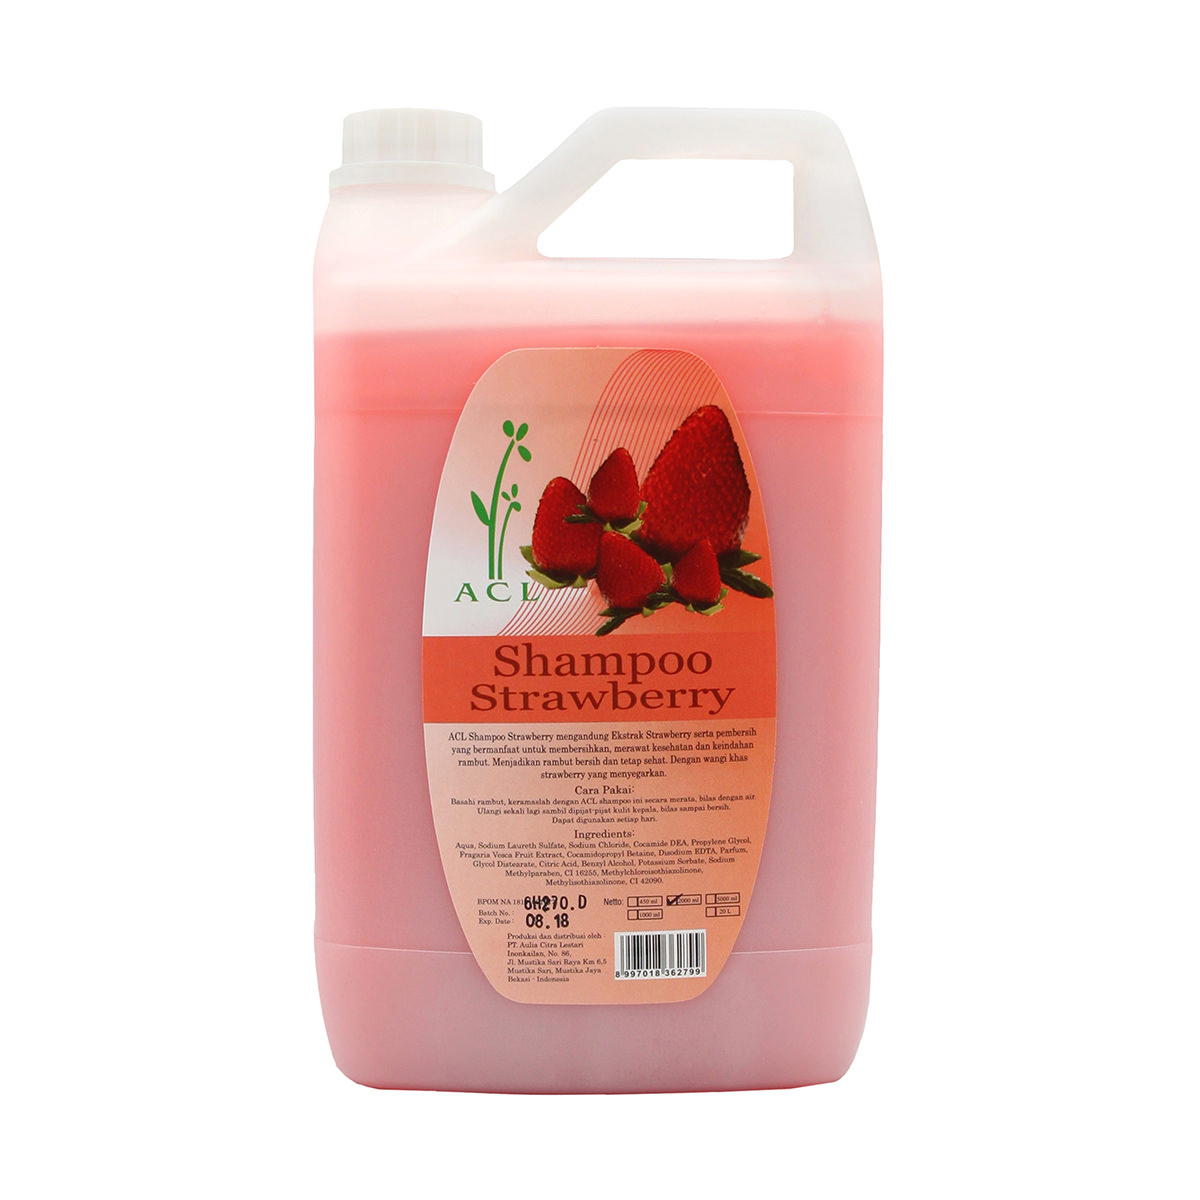 ACL - Shampoo Strawberry (2000 ml)_sfw (1)